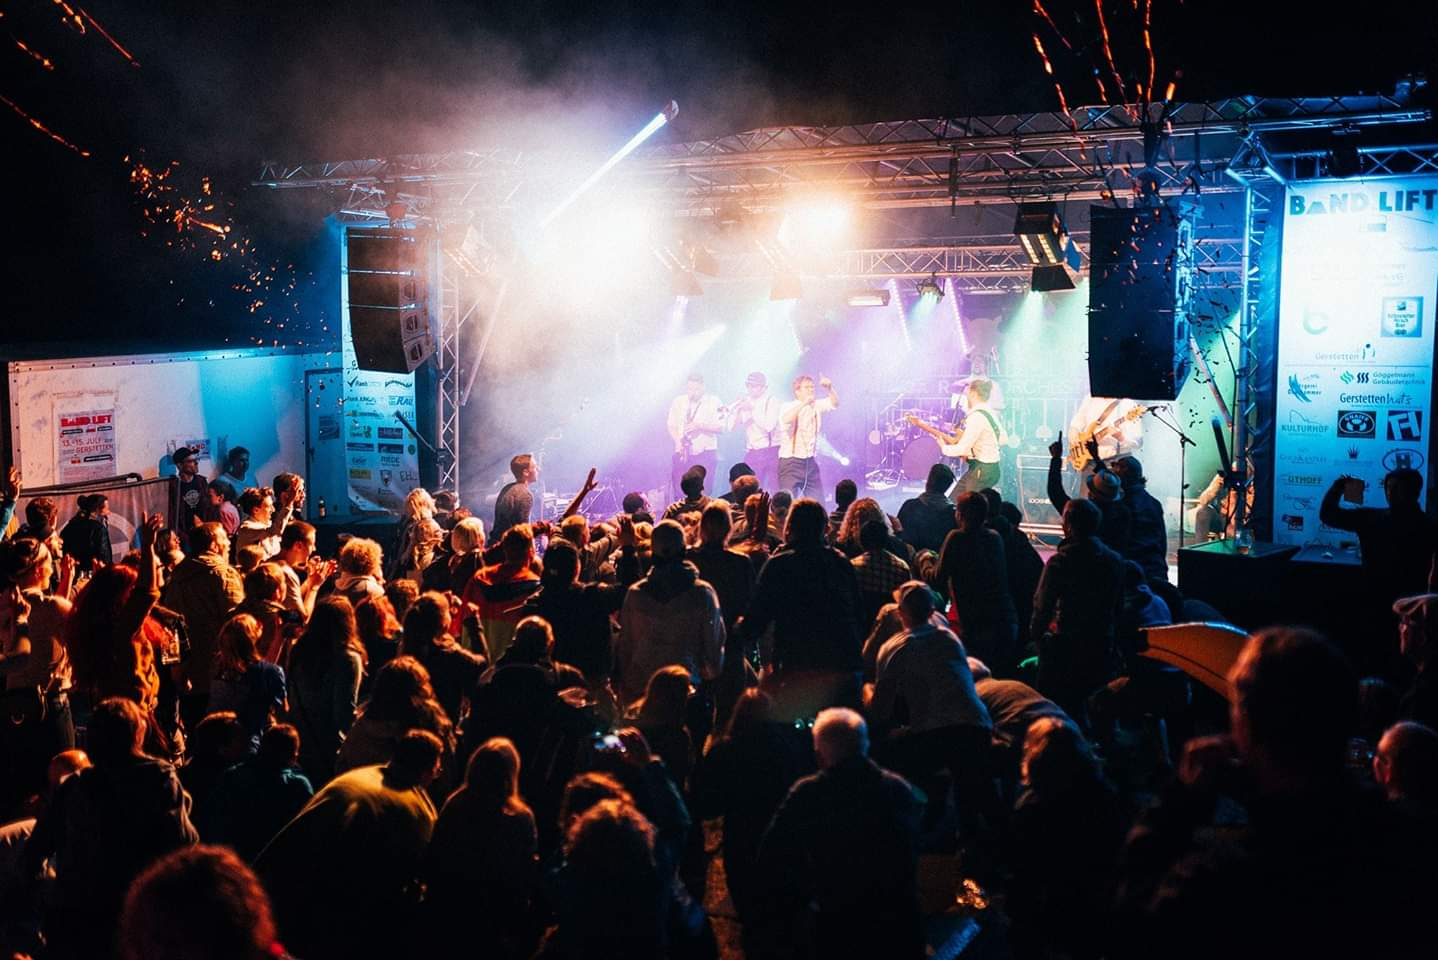 Q1 and Q-SUB Pro Audio System Light Up the Bandlift Music Festival 2018